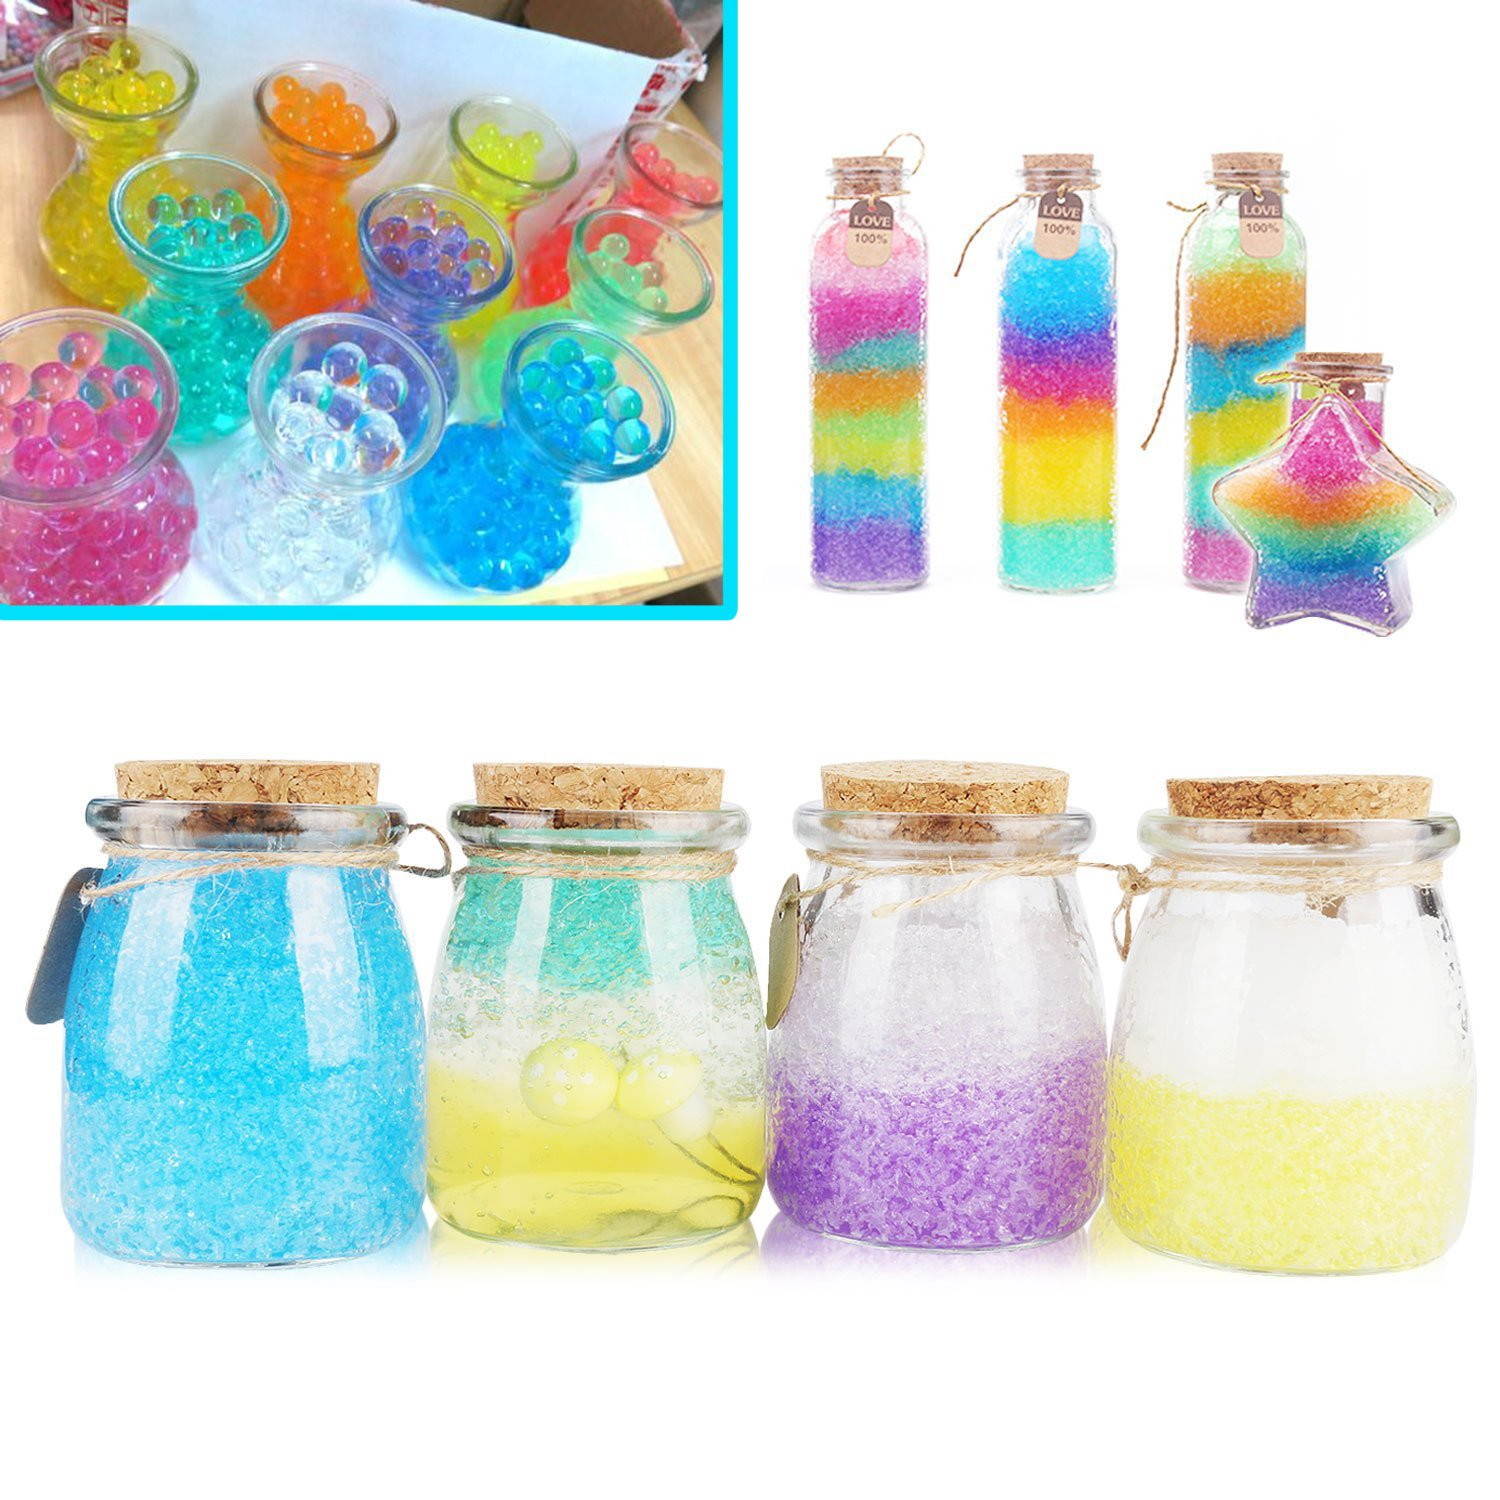 Hosim 18 Pack Water Beads Kid Tactile Sensory Toys Furniture Decorative Vase Filler and Wedding D/écor 9 Colors Magic Growing Jelly Pearls Balls for Spa Refill